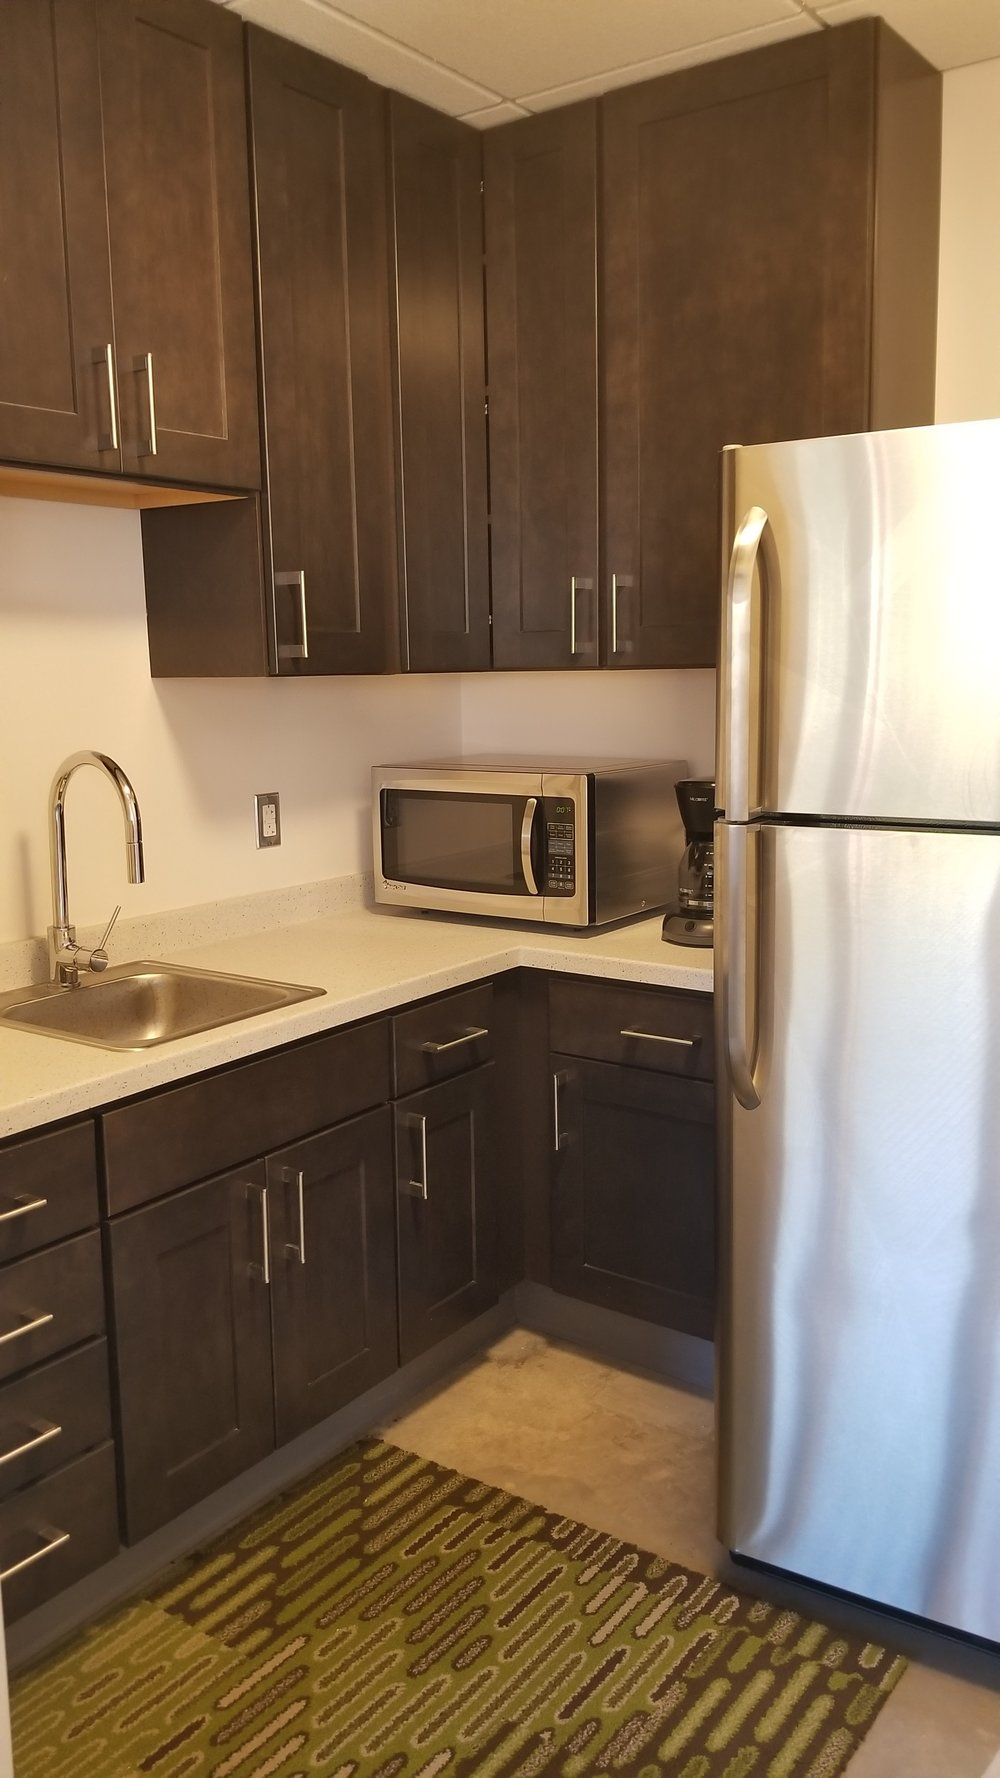 Members can use the kitchenette while working at SpringBoard.